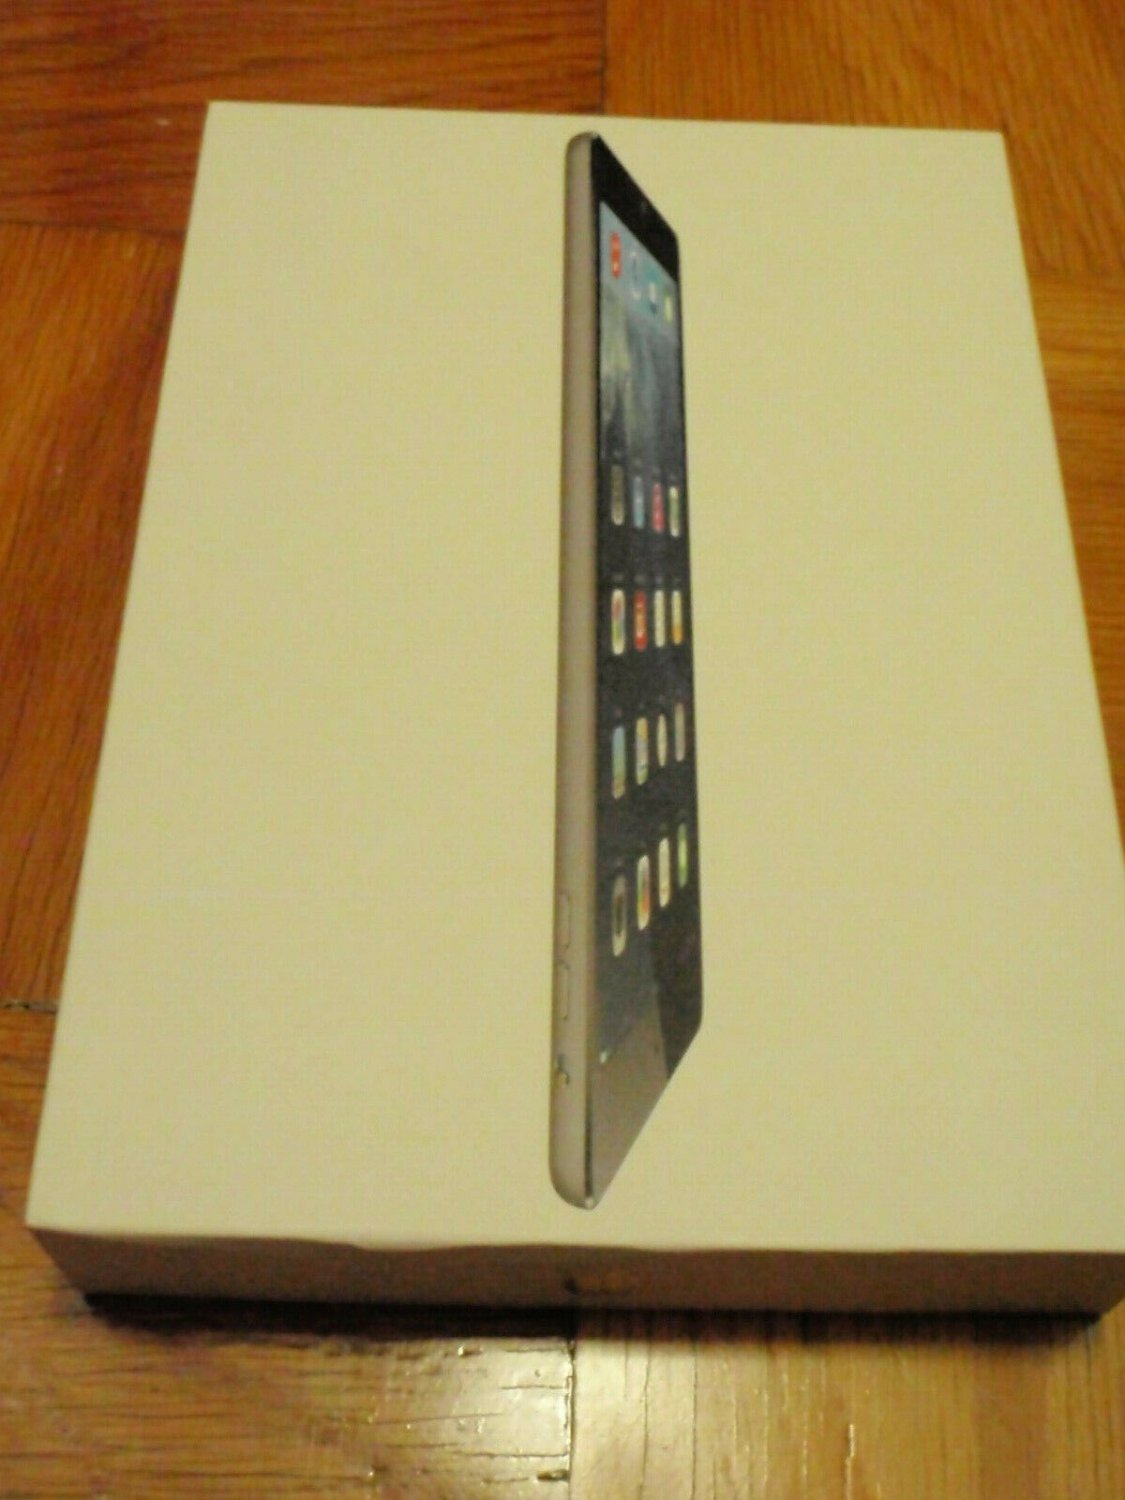 EMPTY BOX for APPLE iPad AIR 16GB Model A1475 ME991LL/A ** EMPTY BOX ONLY **